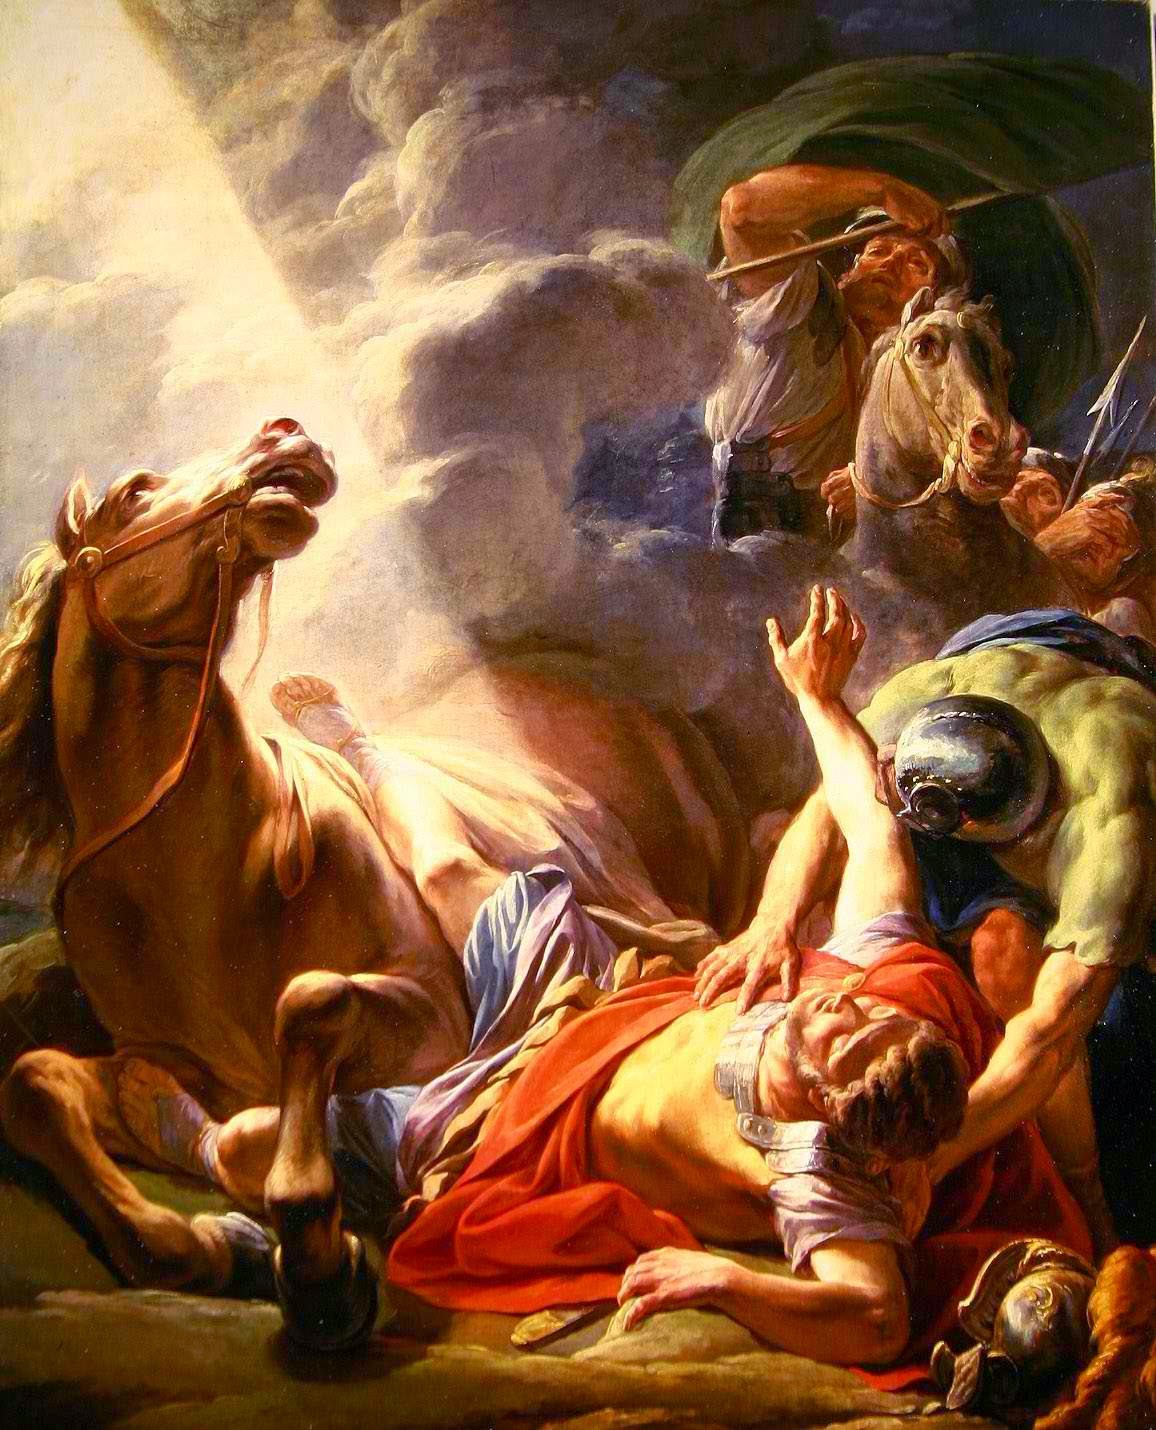 http://anglicanradio.blogspot.com/2015/01/the-conversion-of-saint-paul.html